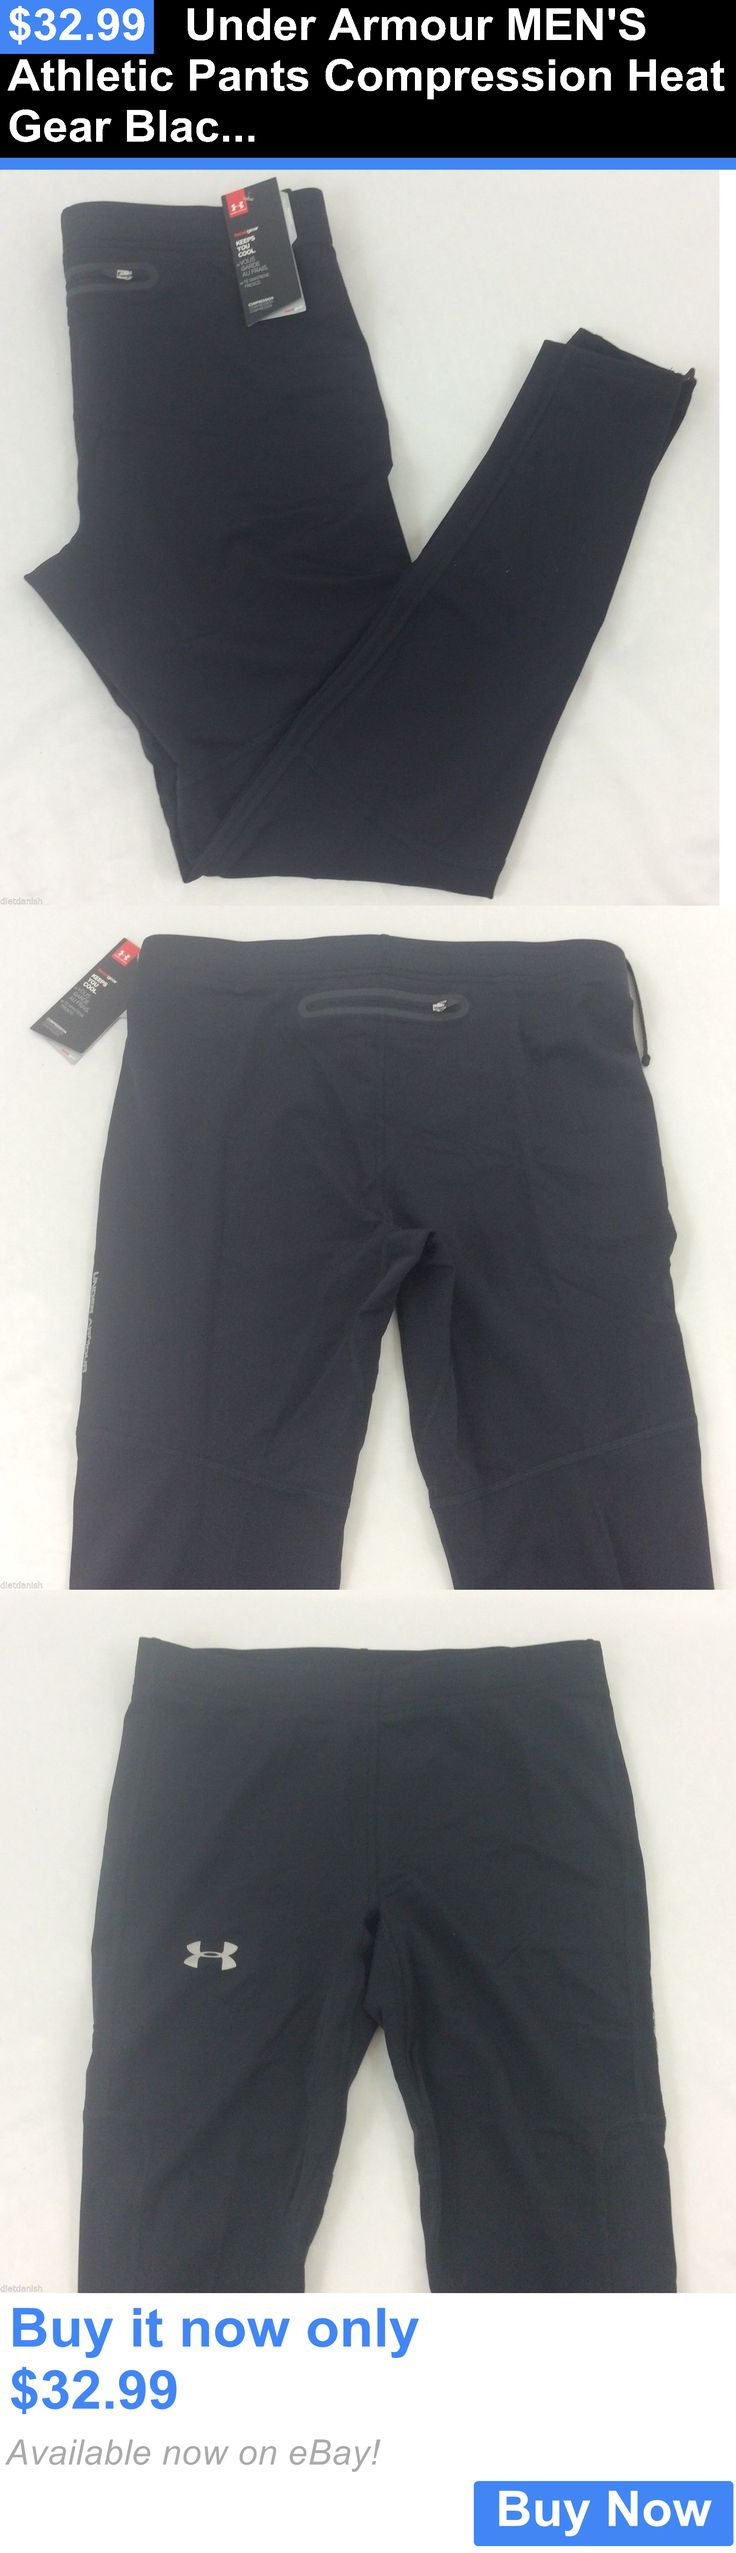 Men Athletics: Under Armour Mens Athletic Pants Compression Heat Gear Black Size L BUY IT NOW ONLY: $32.99